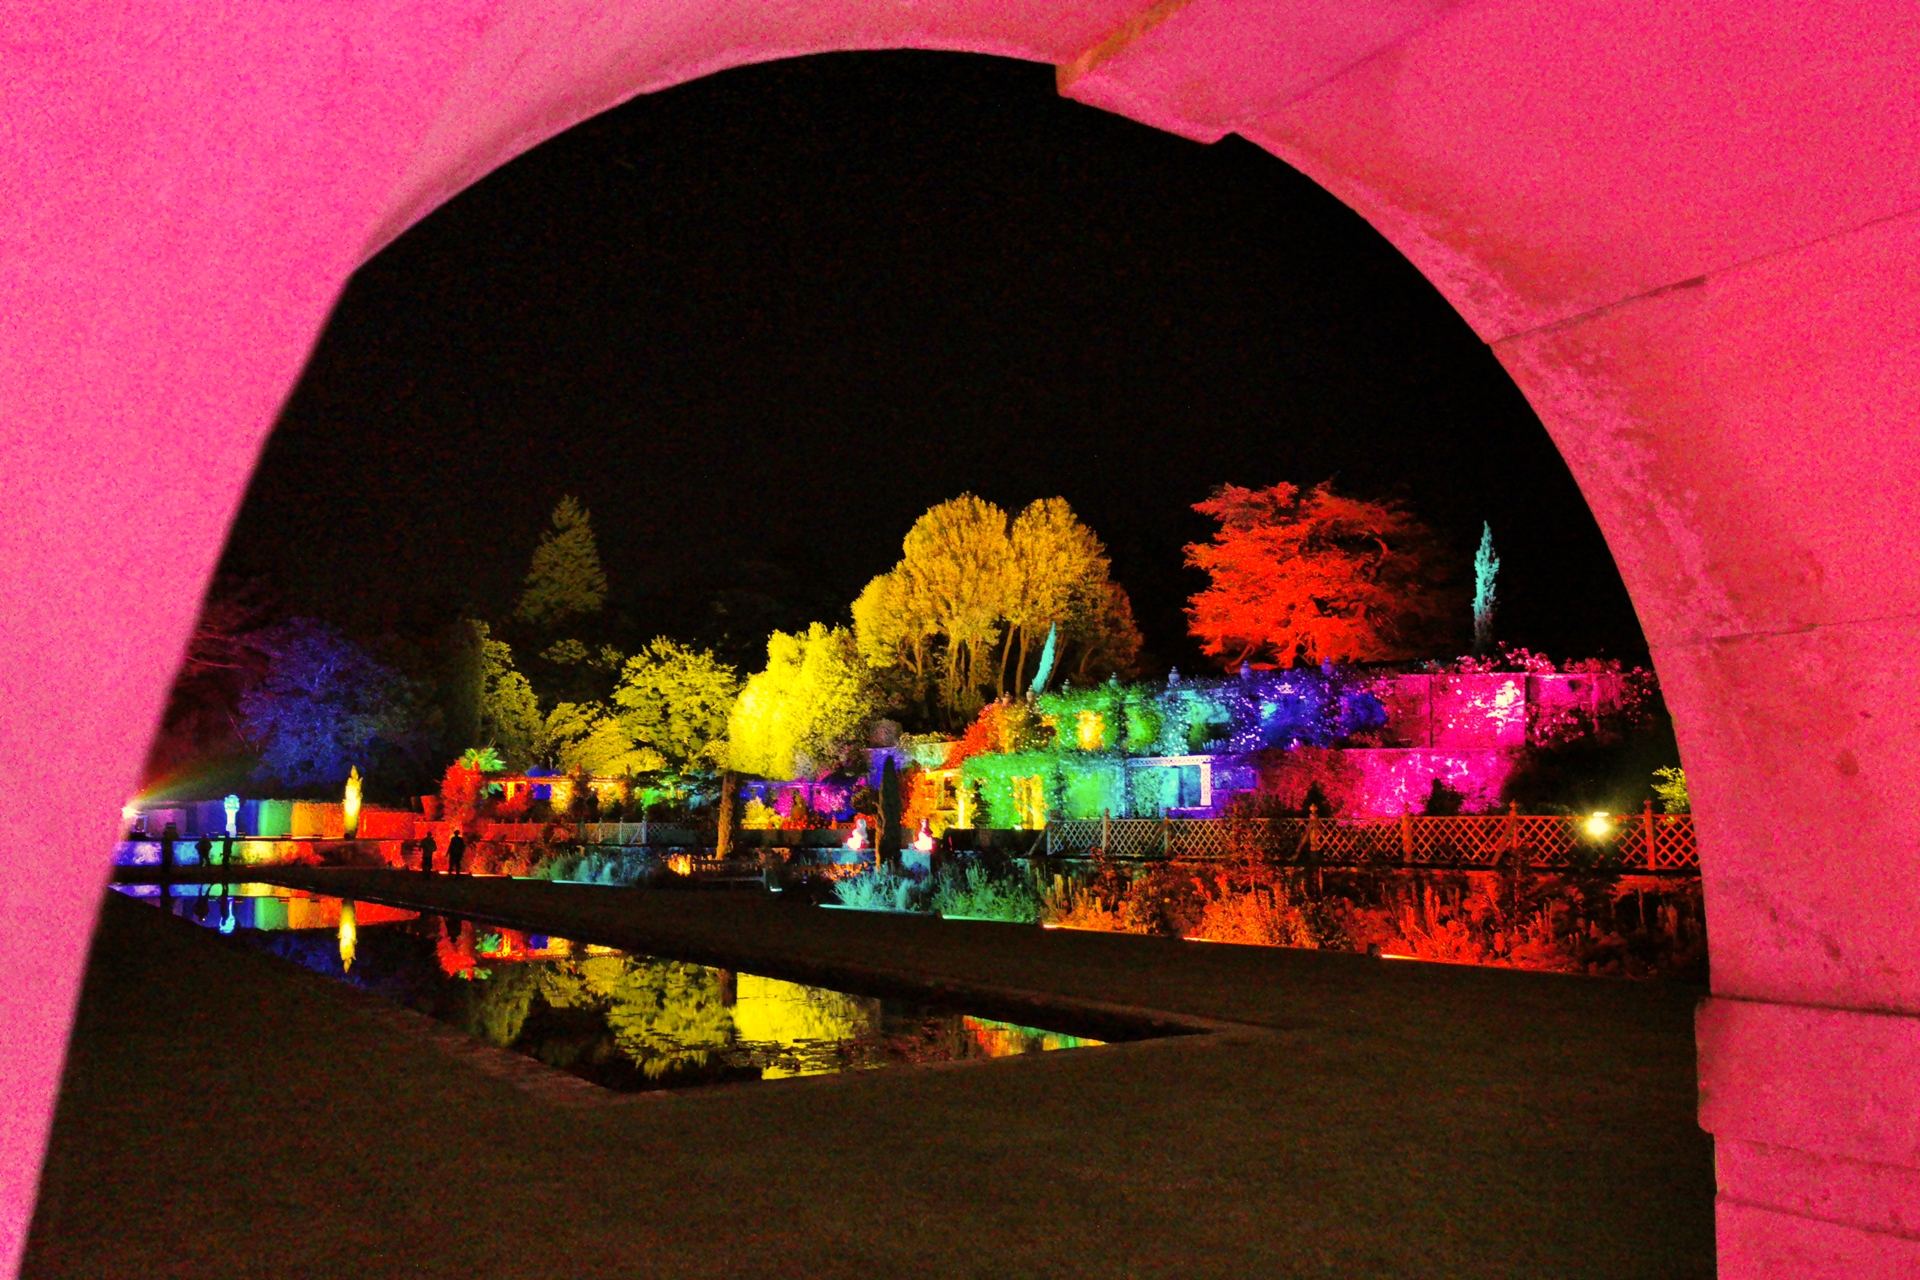 Bodnant Garden Lit Lighting Terrace Pin Mill 2838 Copy InPixio